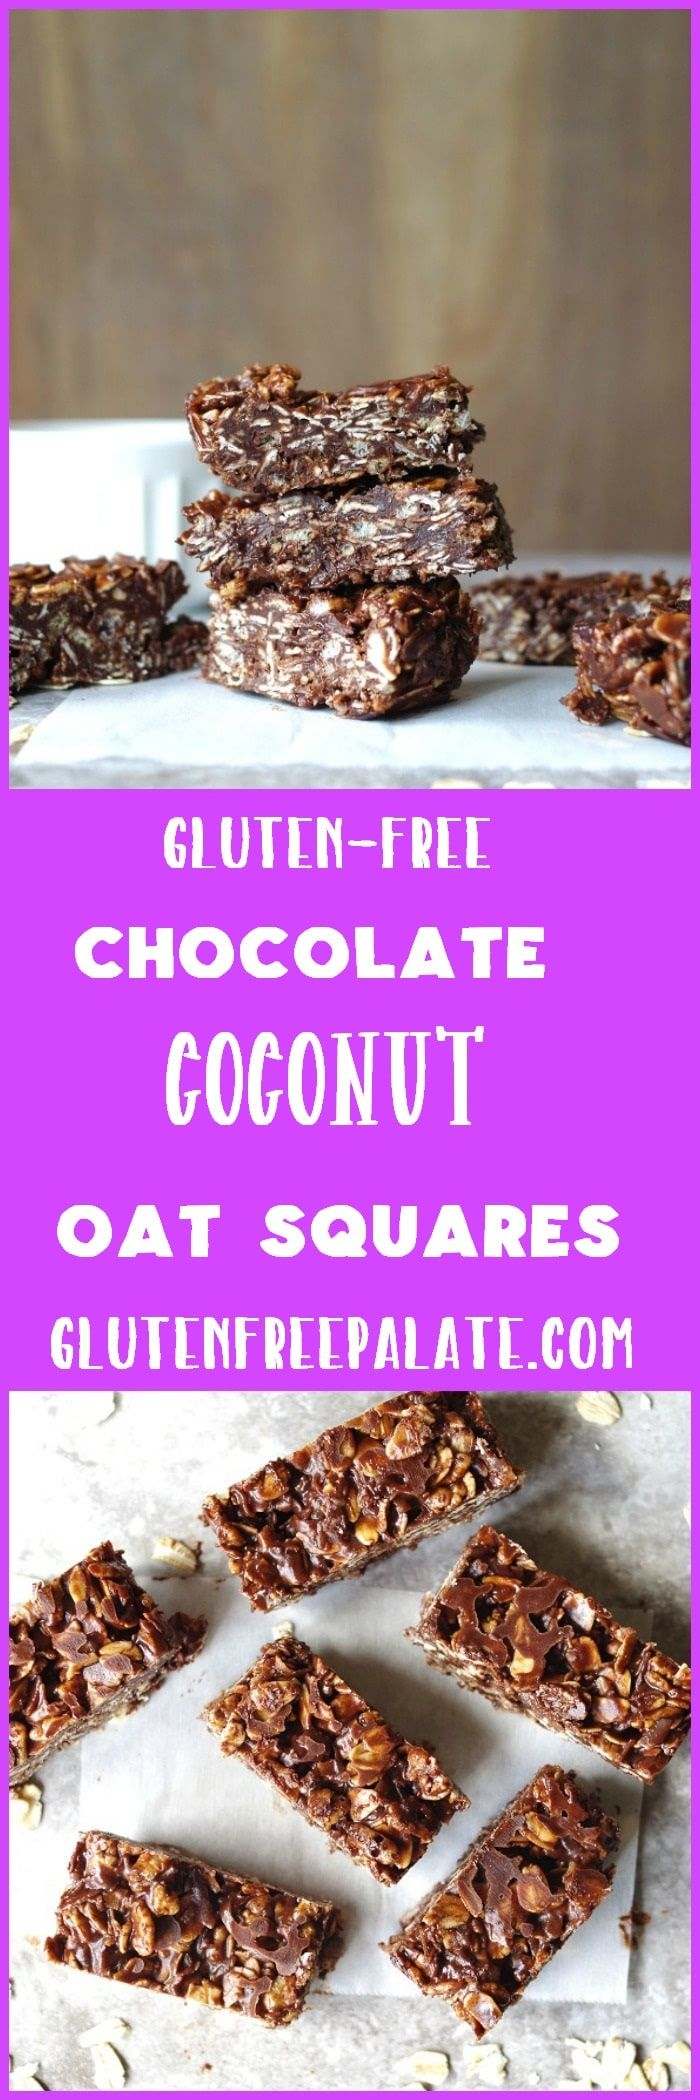 "These no bake Gluten-Free Chocolate Coconut Oat Squares remind me of a candy bar I loved growing up – ""Whatchamacallit bars"". They are easy to make, chewy, and delightful. via @gfpalate"